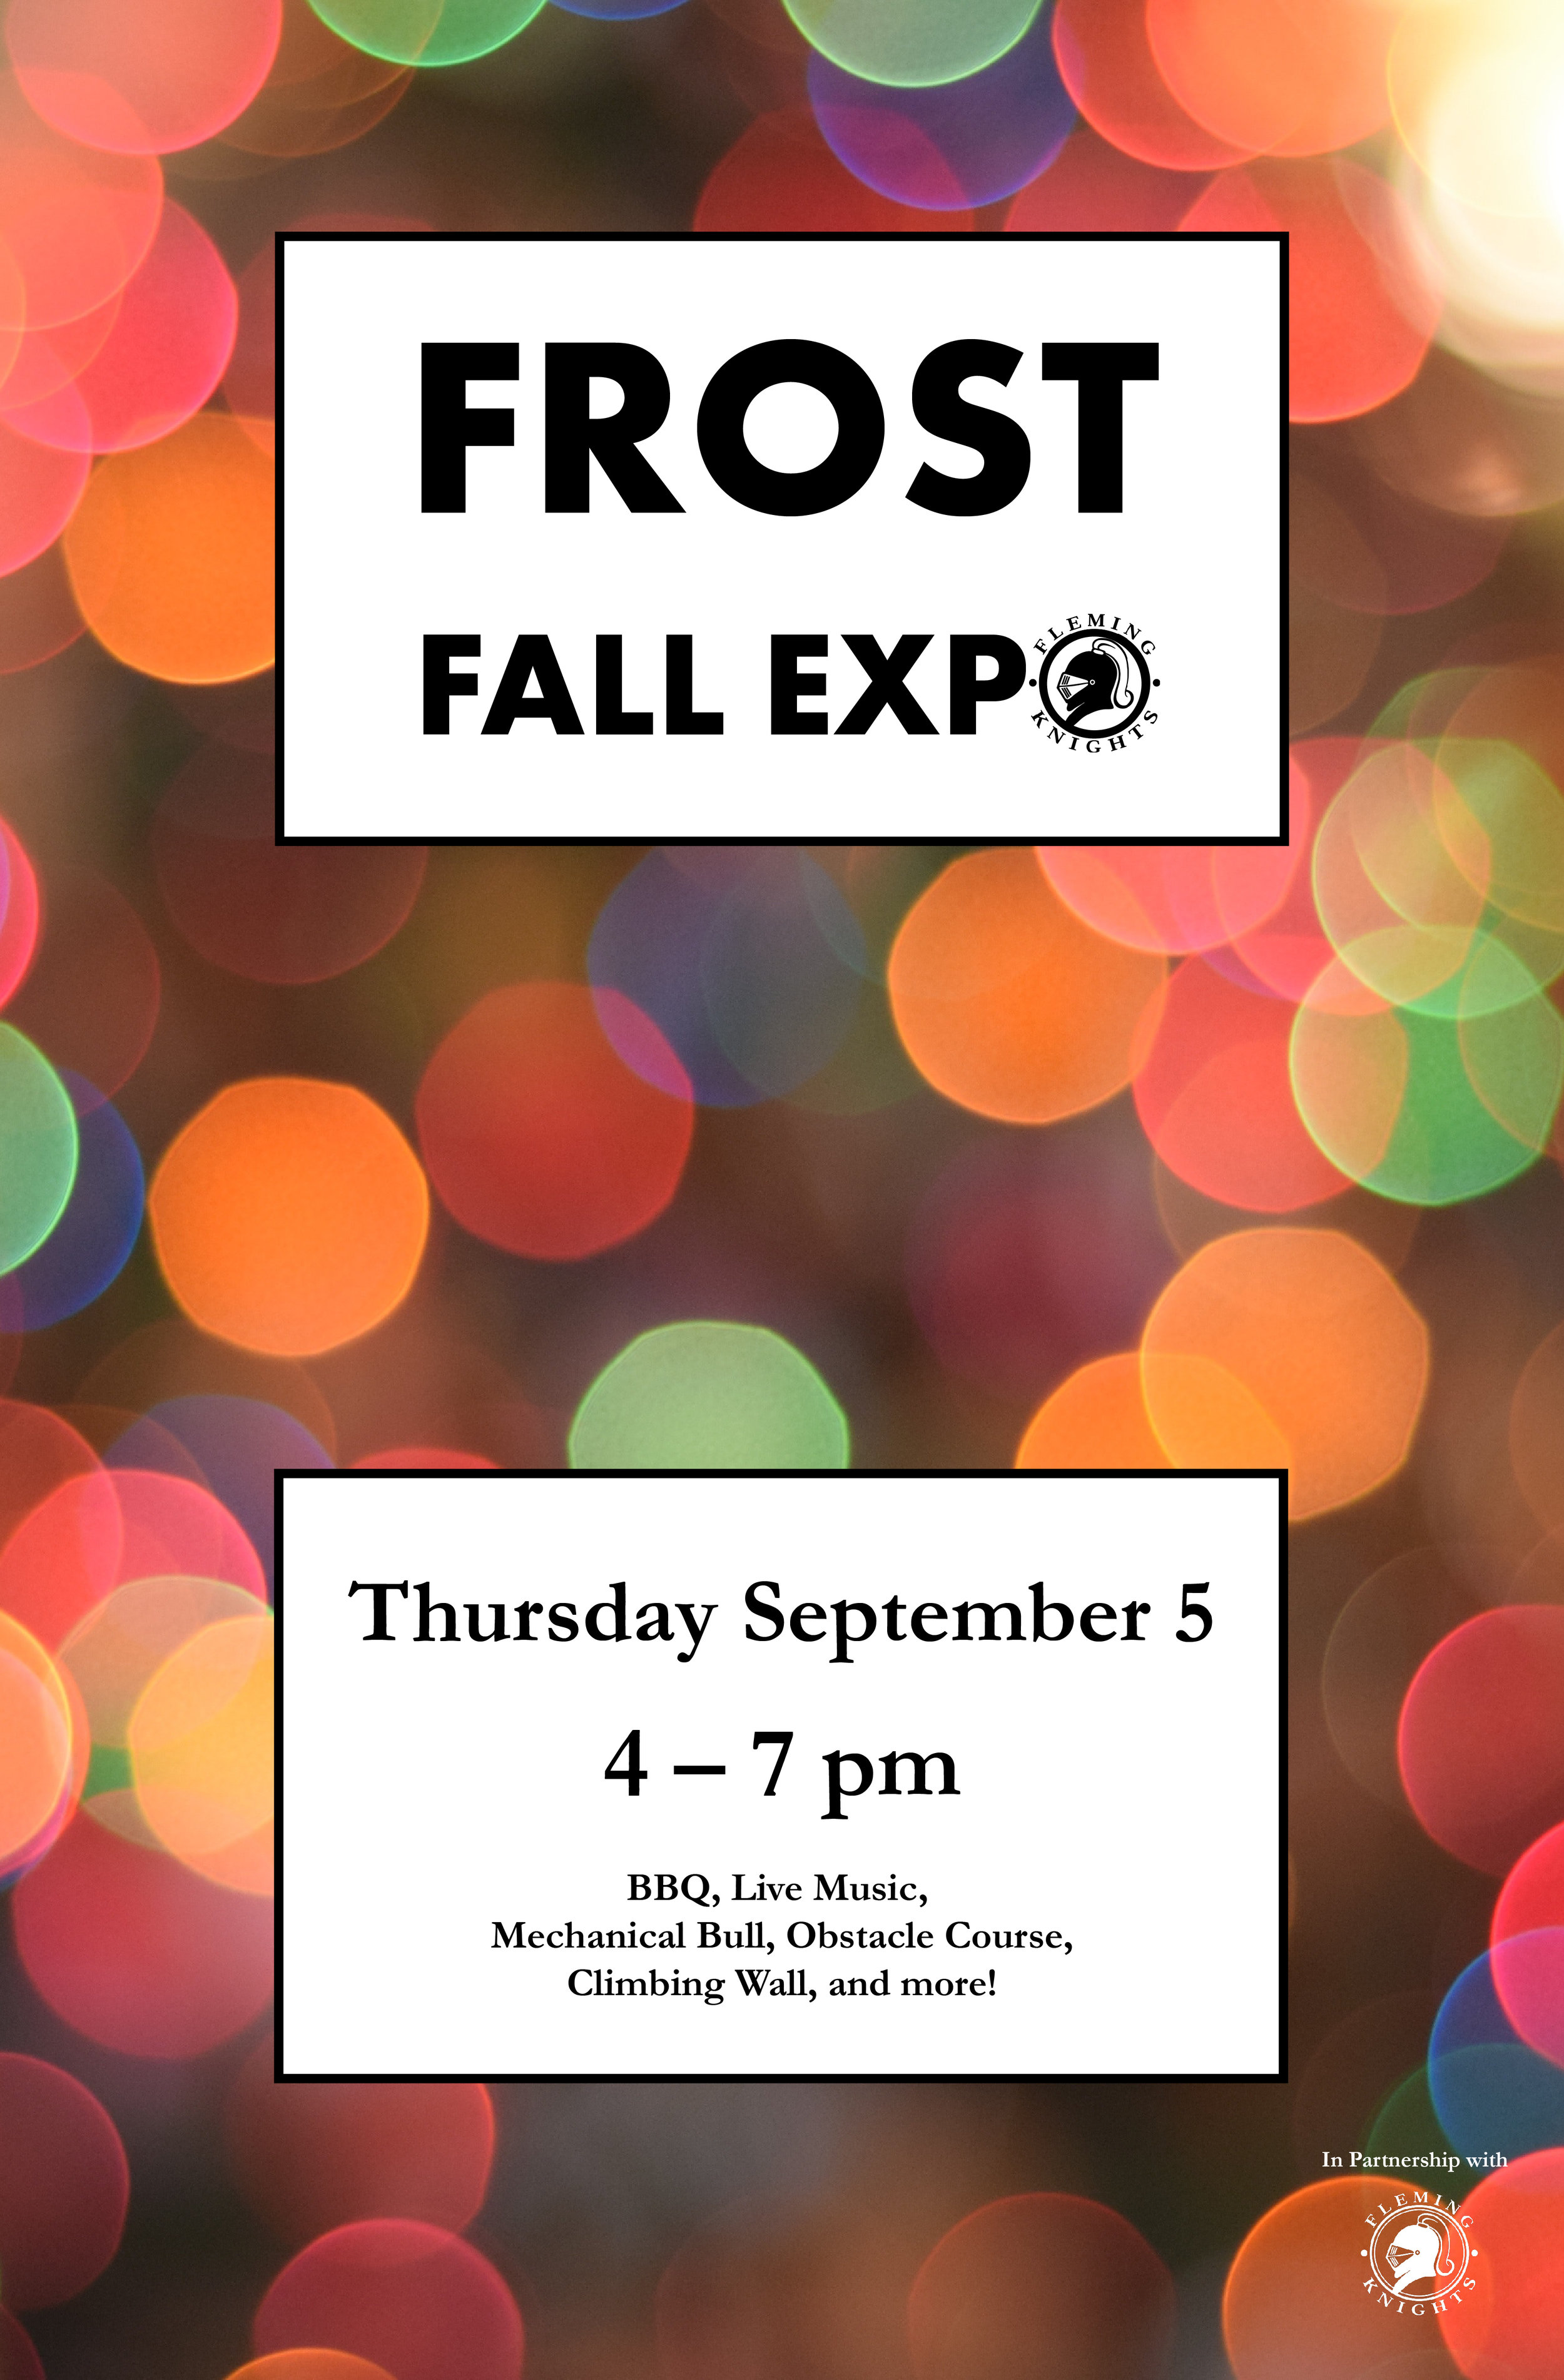 Frost Fall Expo.jpg